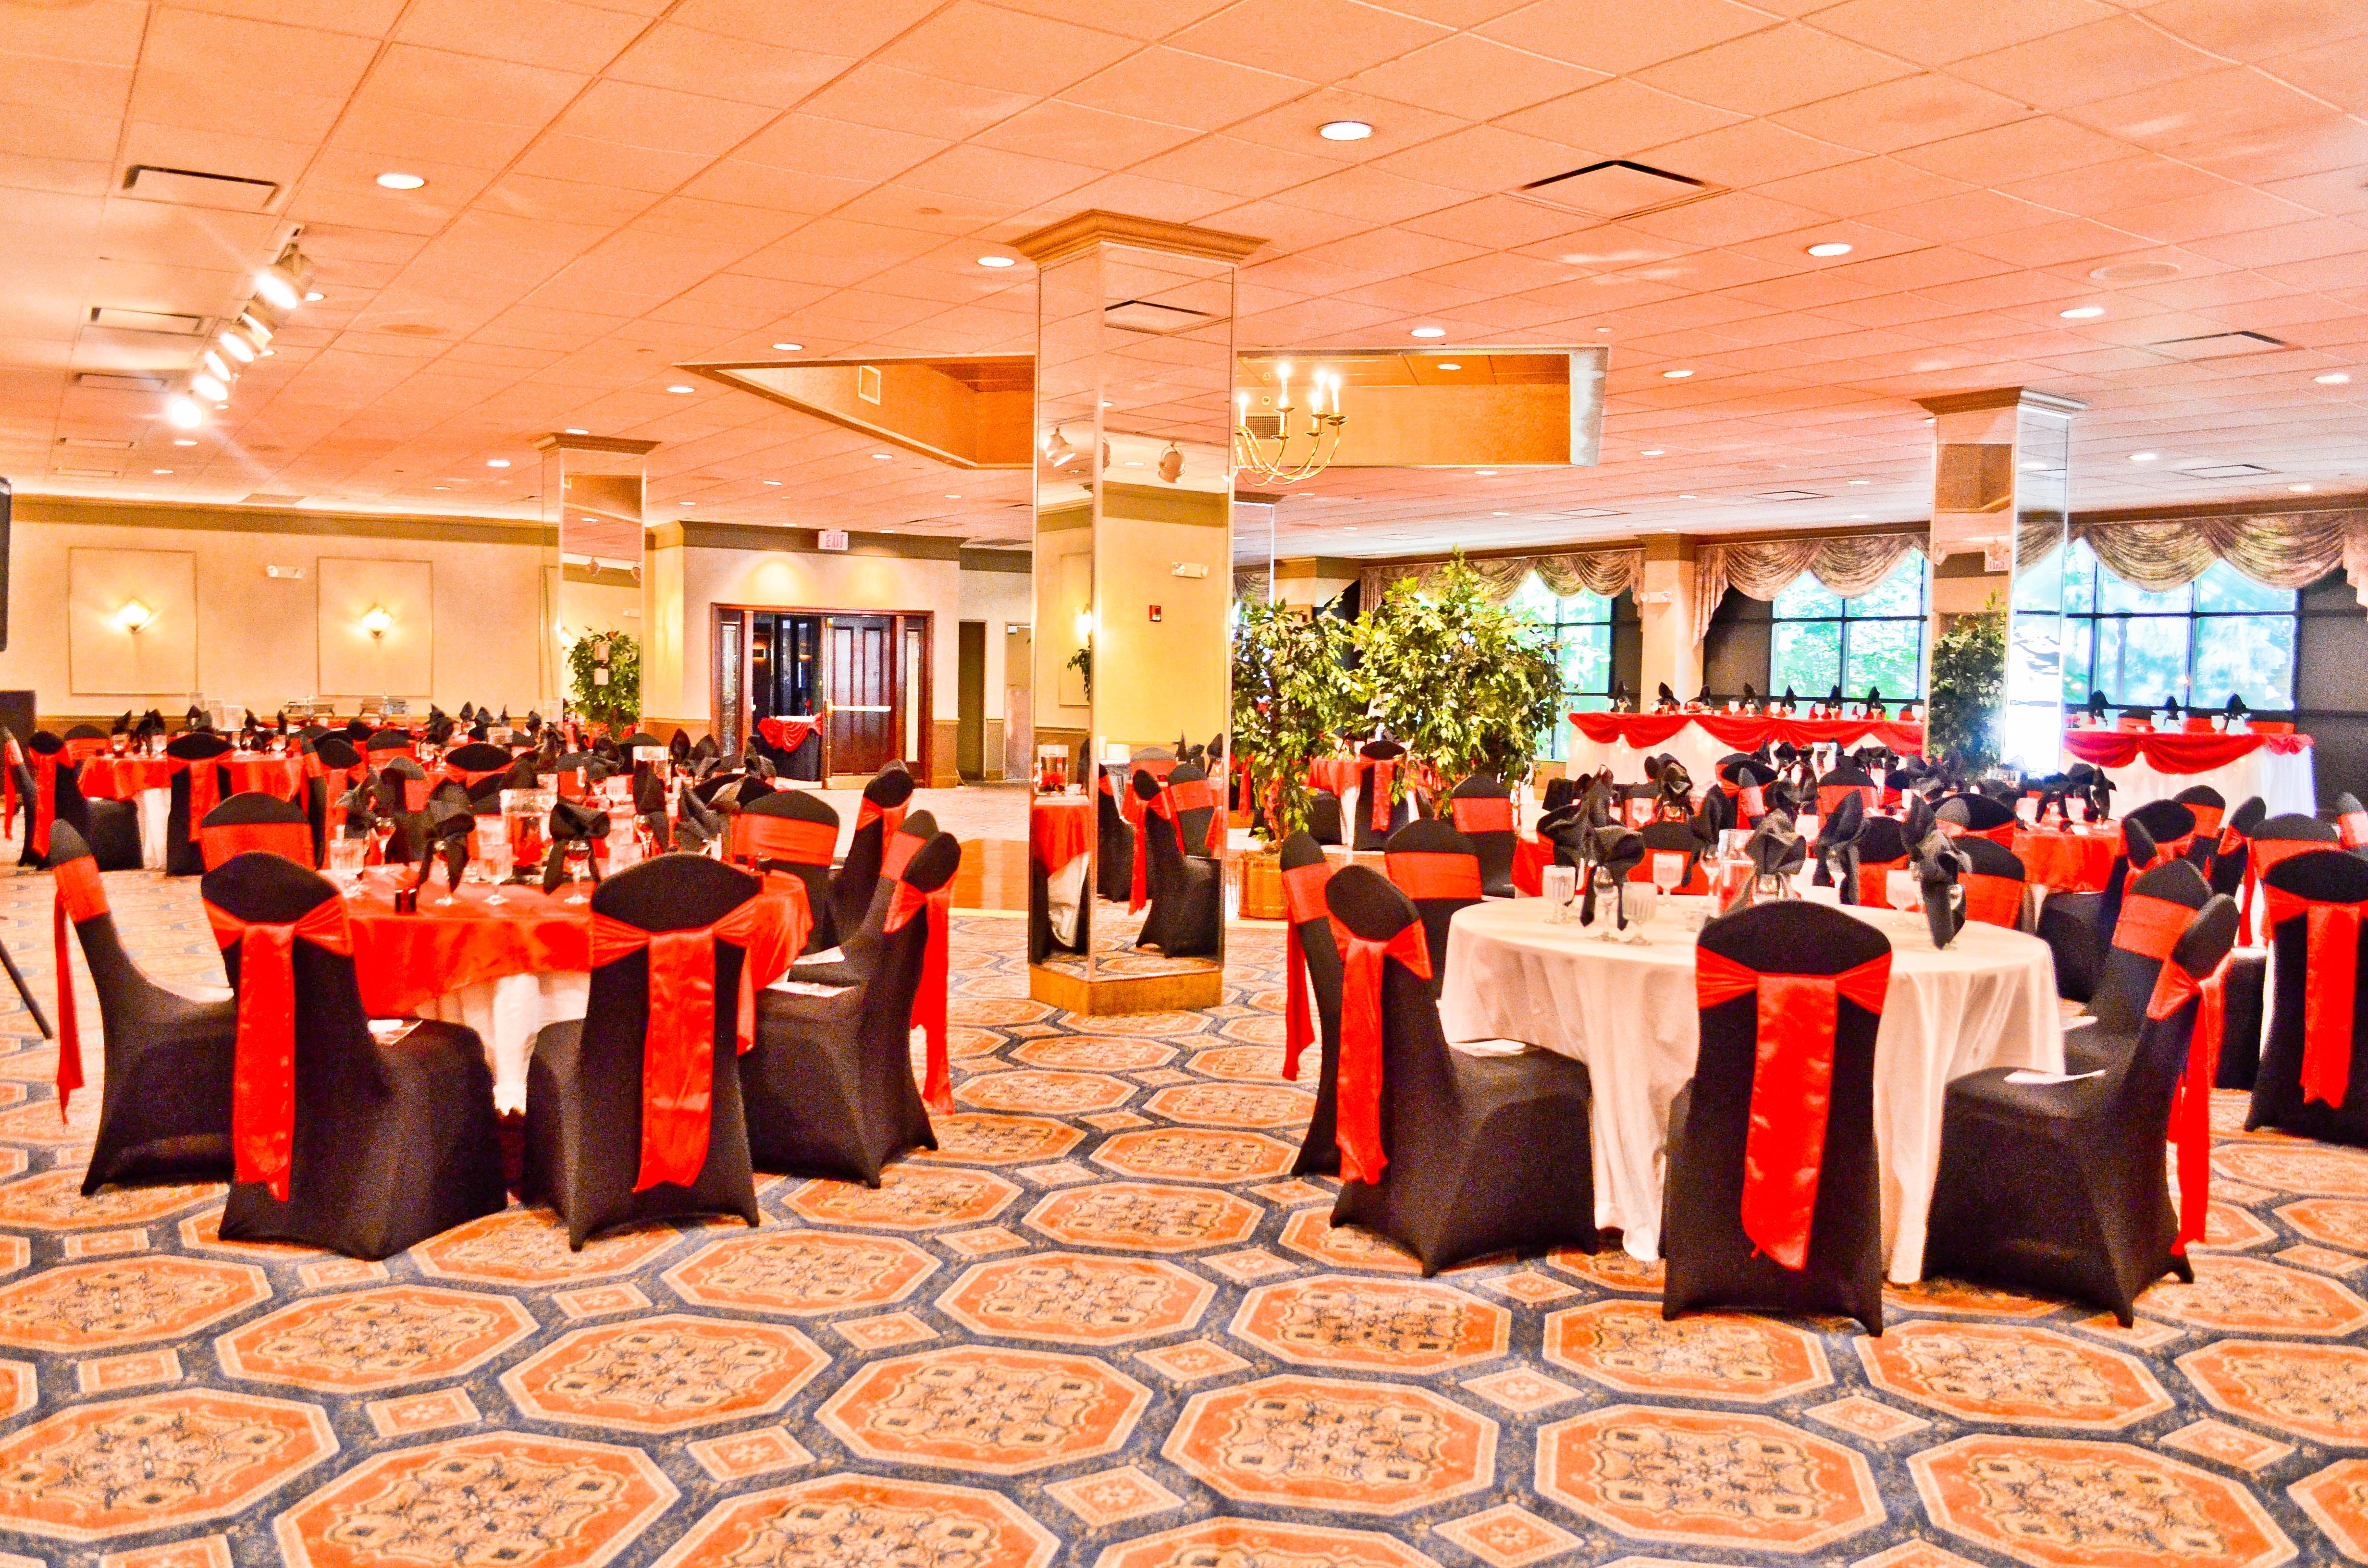 Wondrous Black Spandex Chair Covers Red Satin Sashes Table Gmtry Best Dining Table And Chair Ideas Images Gmtryco